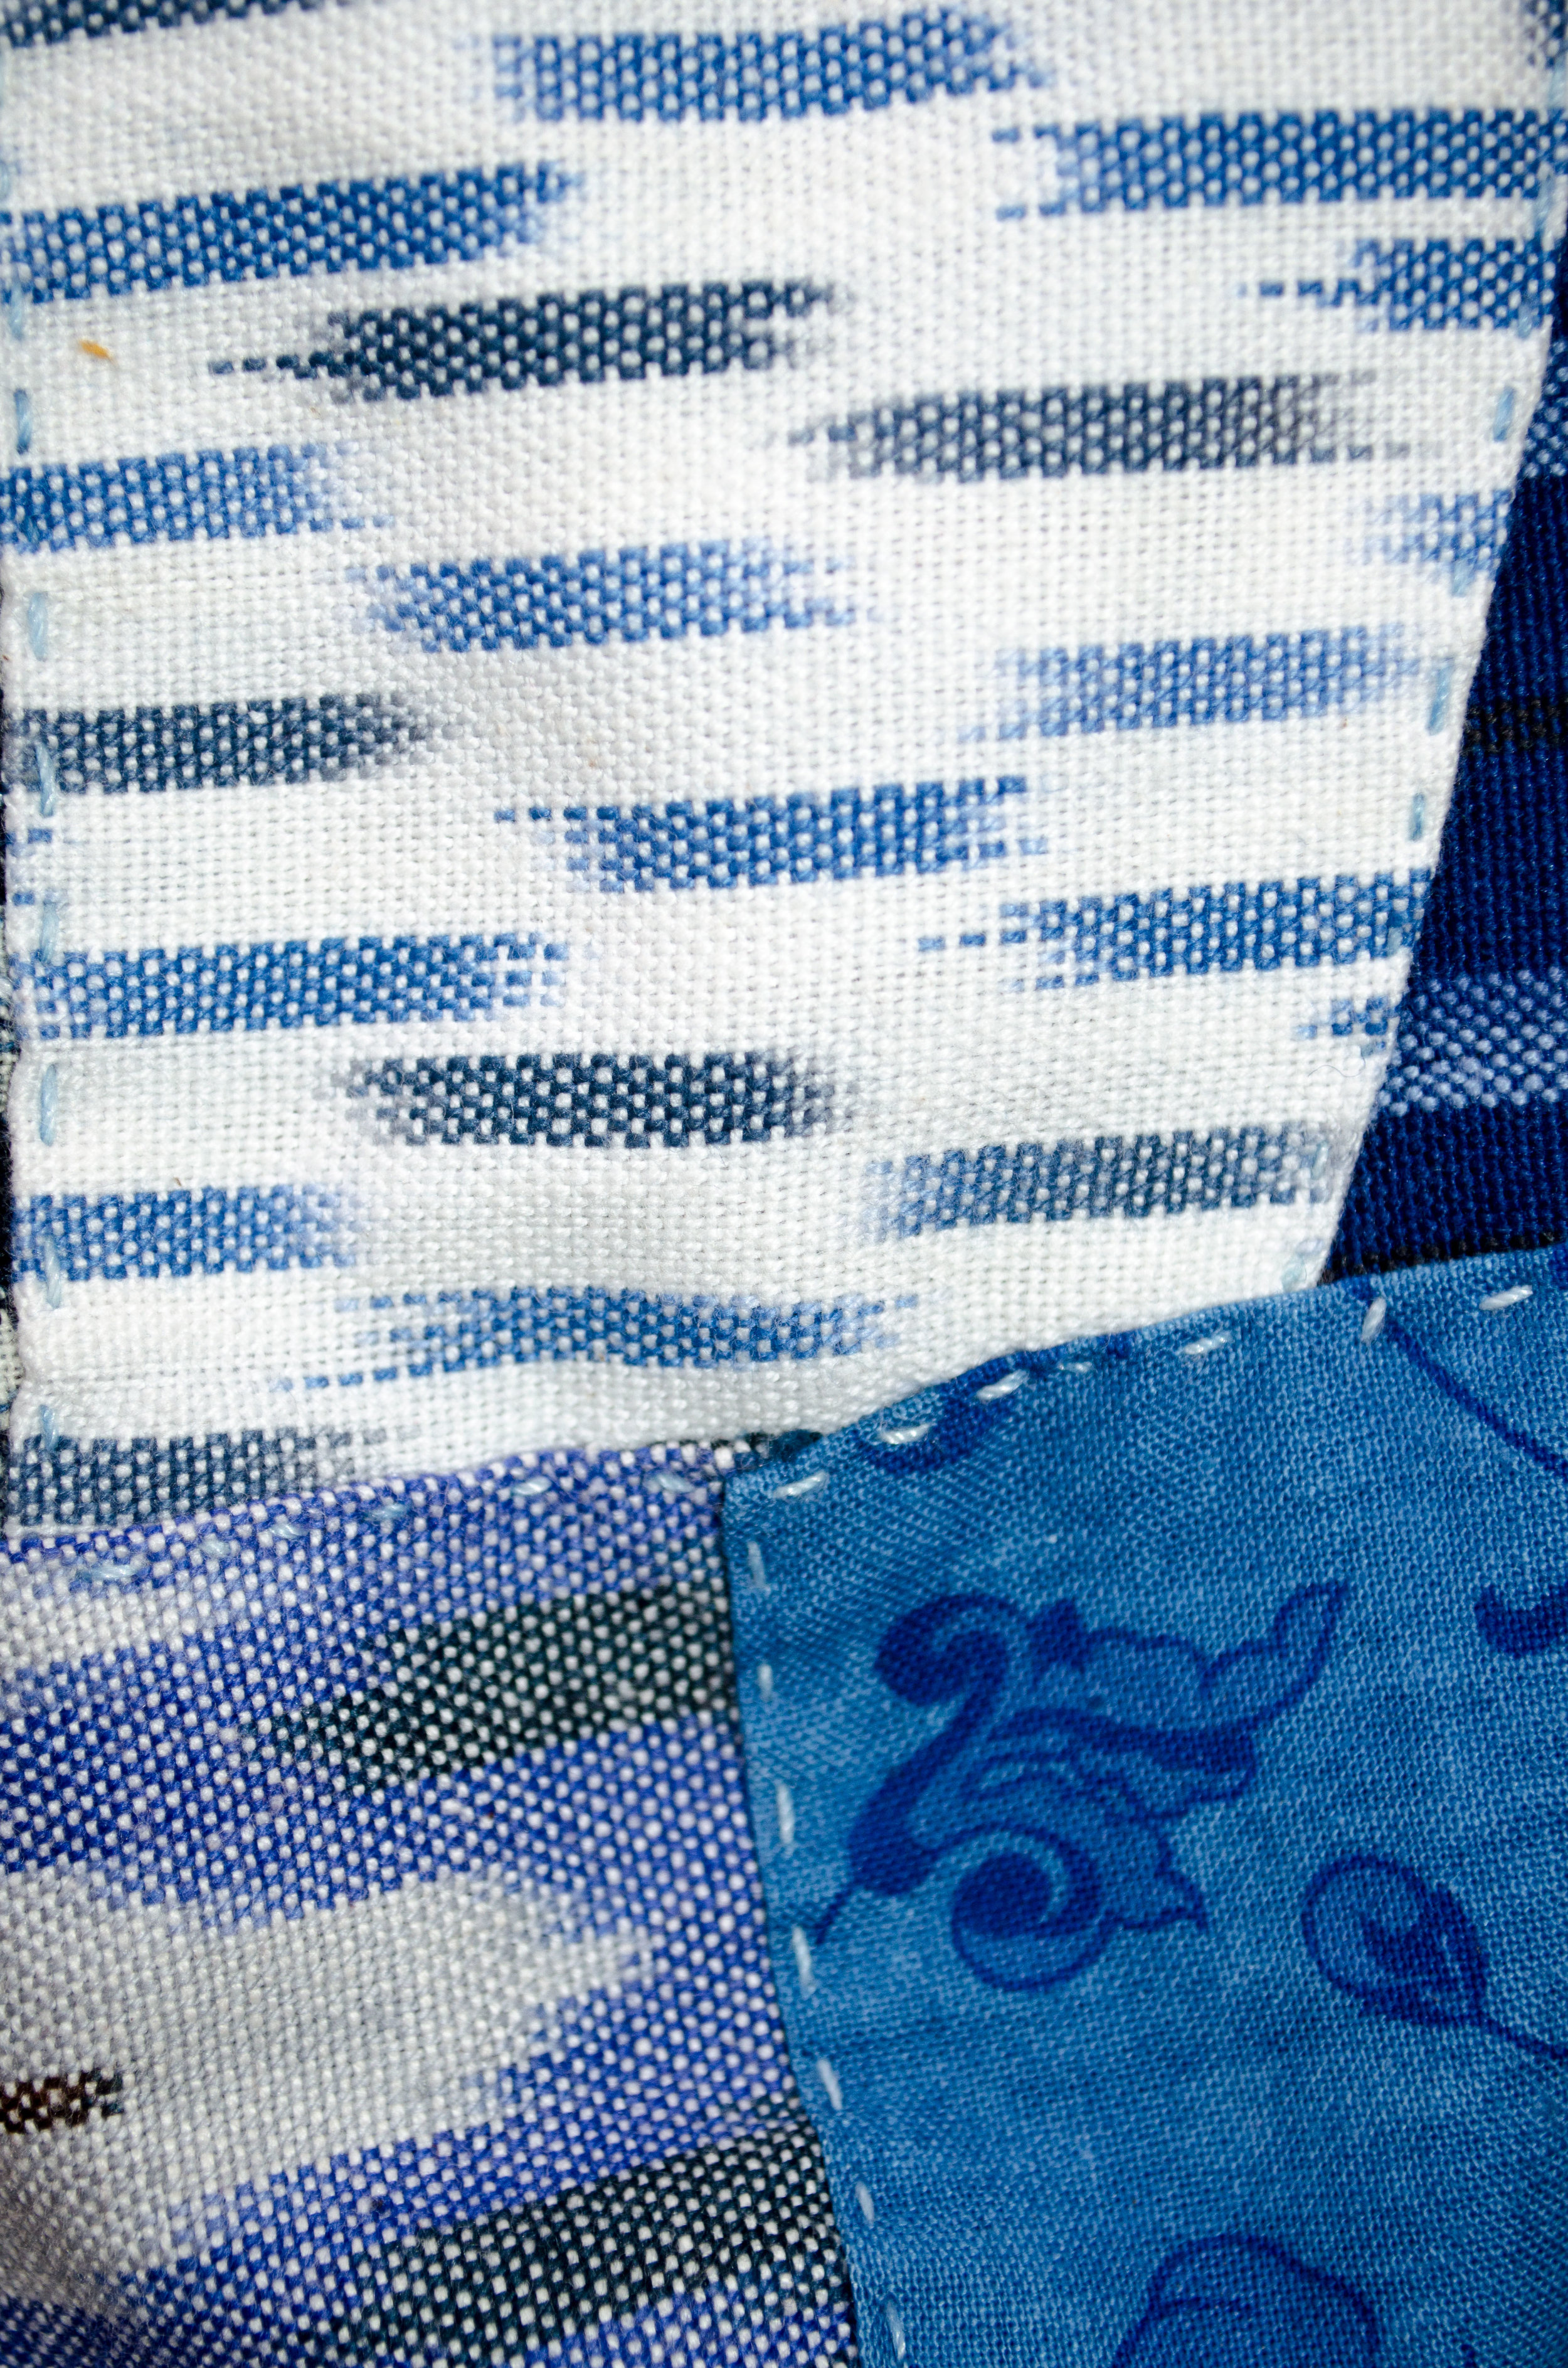 Stitch A Day 2017, Day 12 by Carlyn Clark. Overdyed vintage Laura Ashley cotton